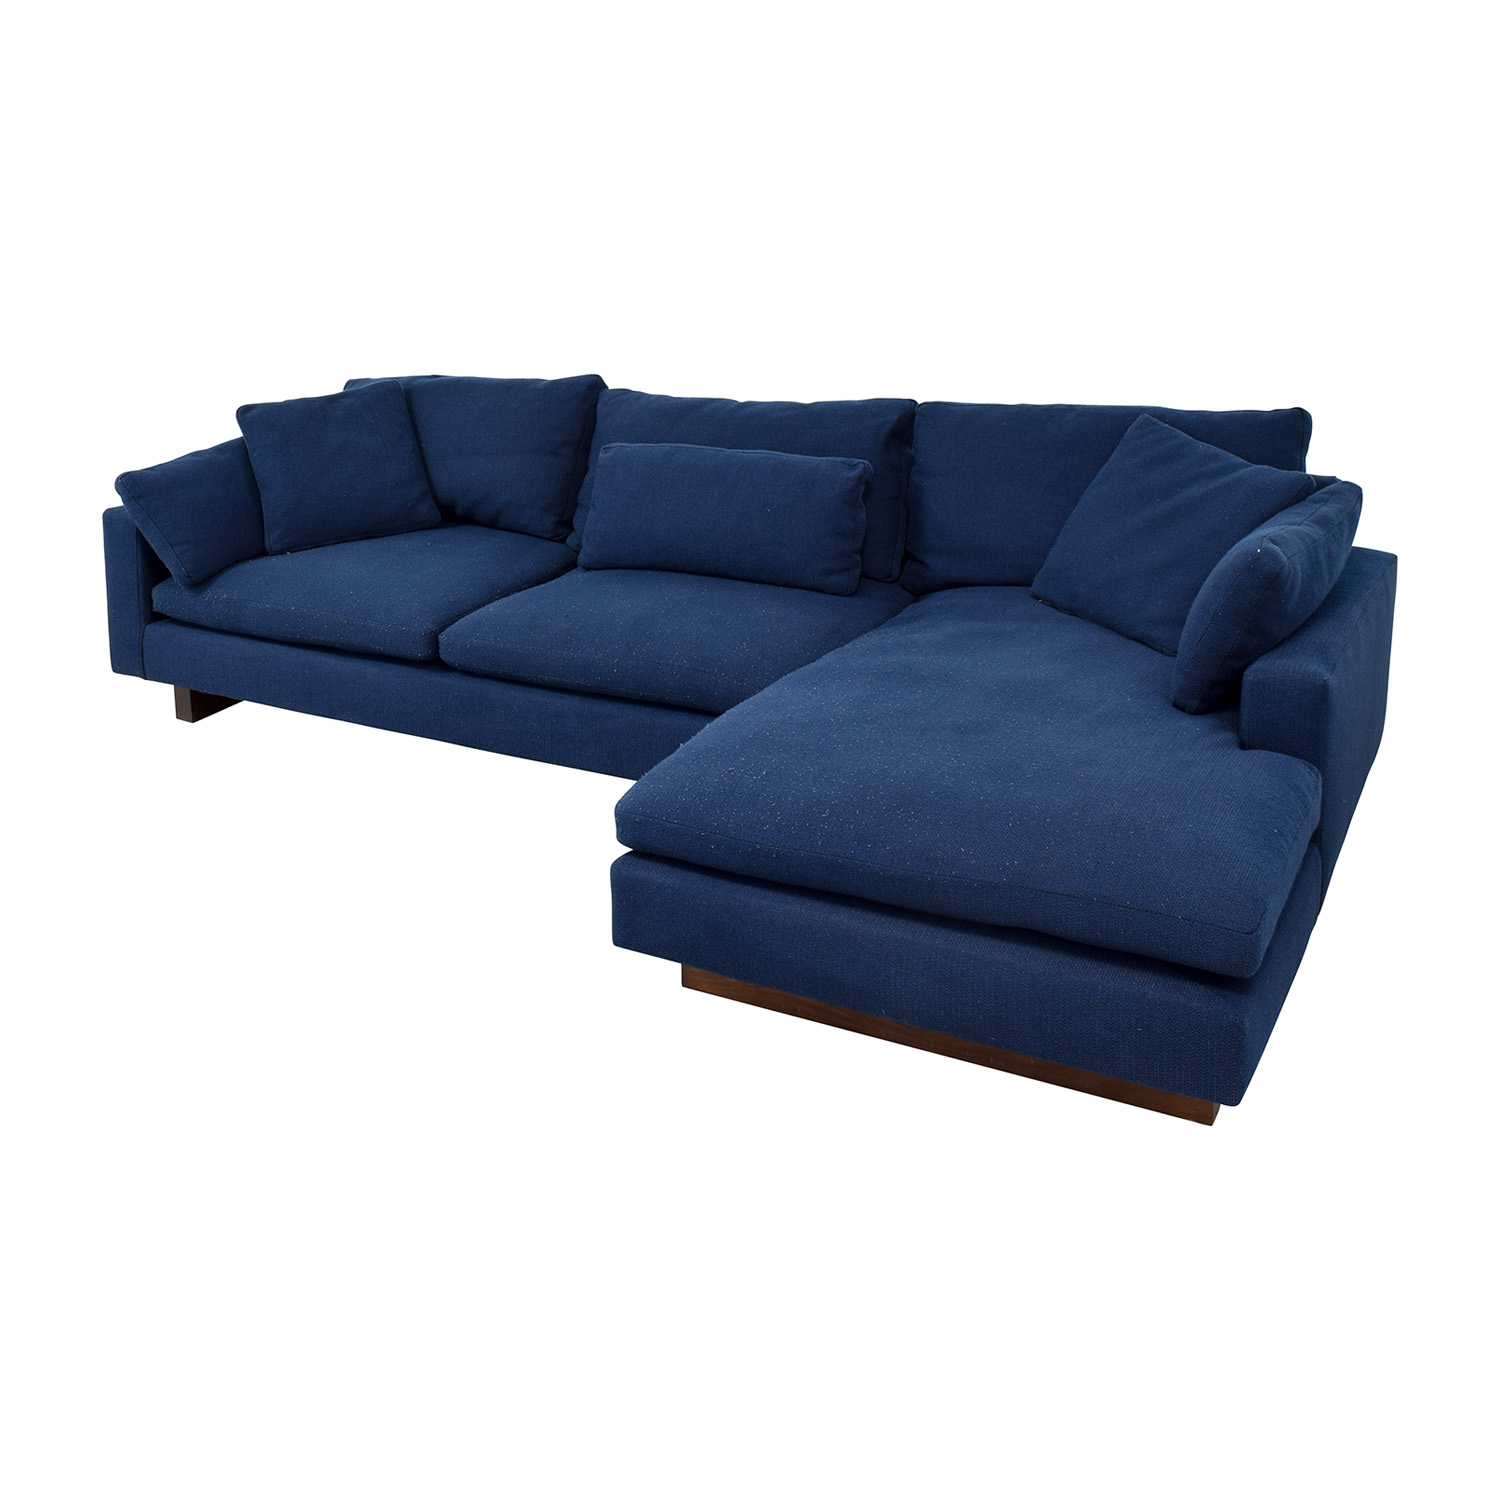 West Elm West Elm Indigo Chaise Sectional